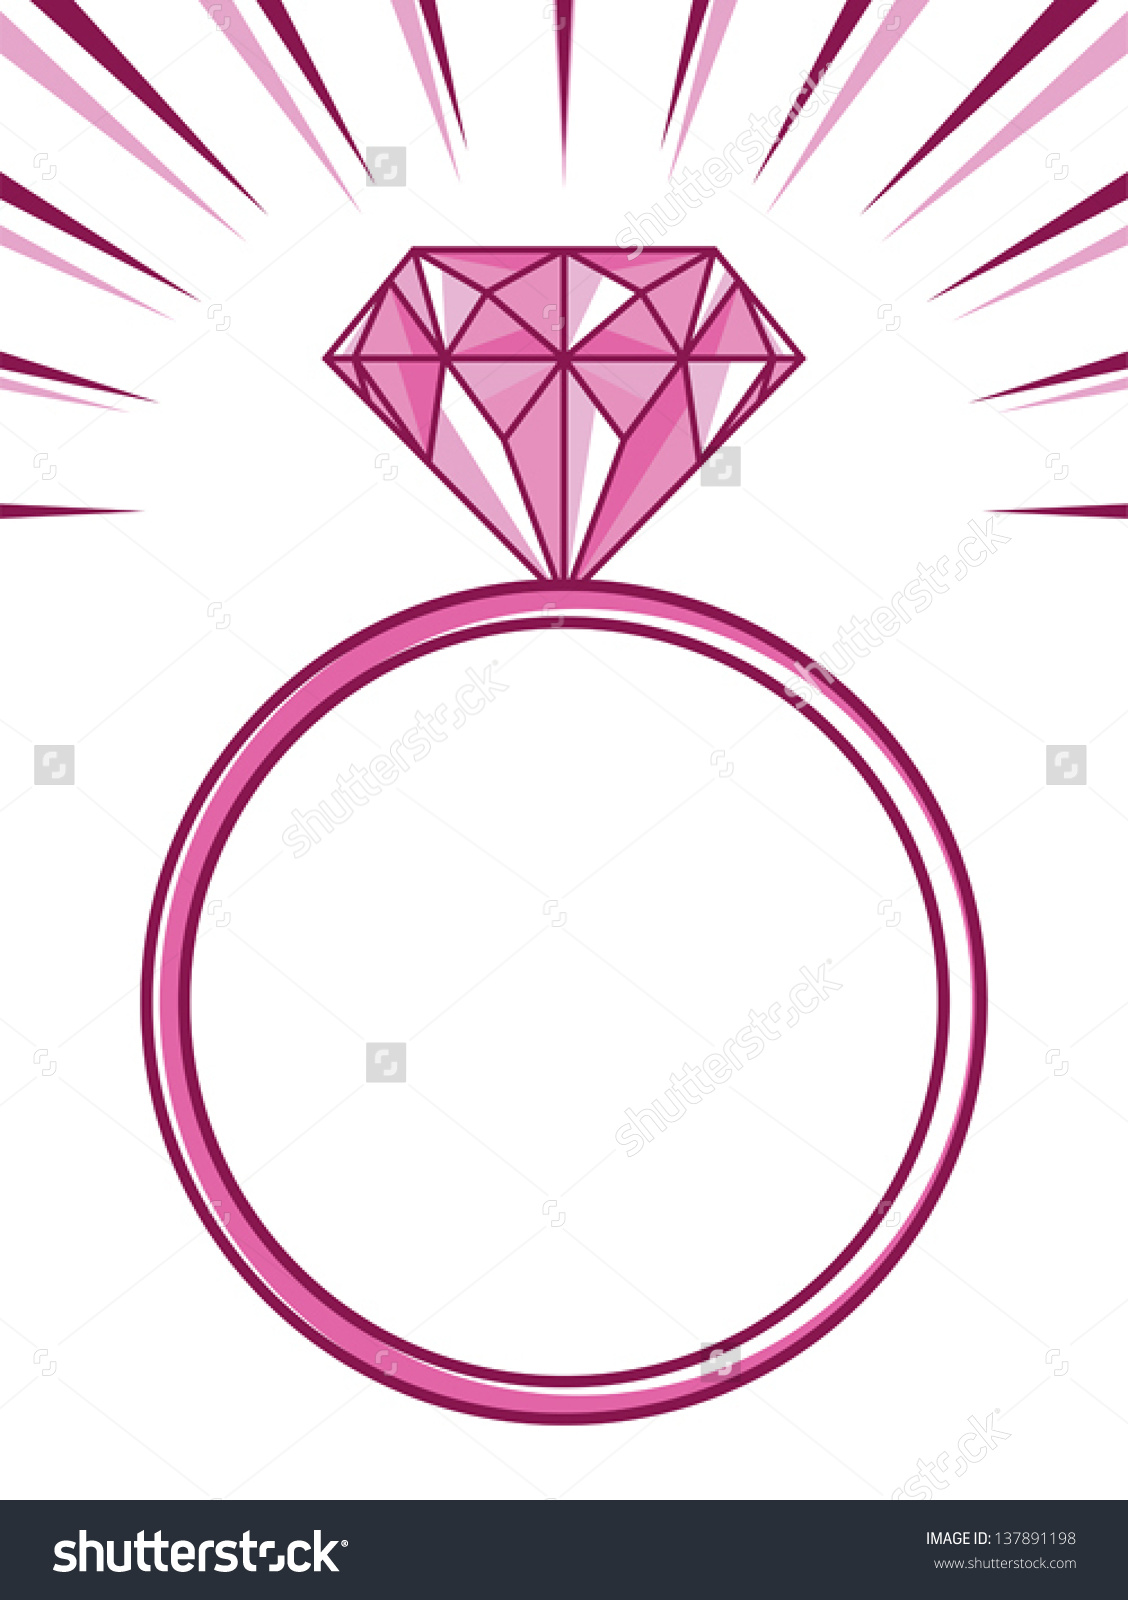 Pink Wedding Ring Clipart.